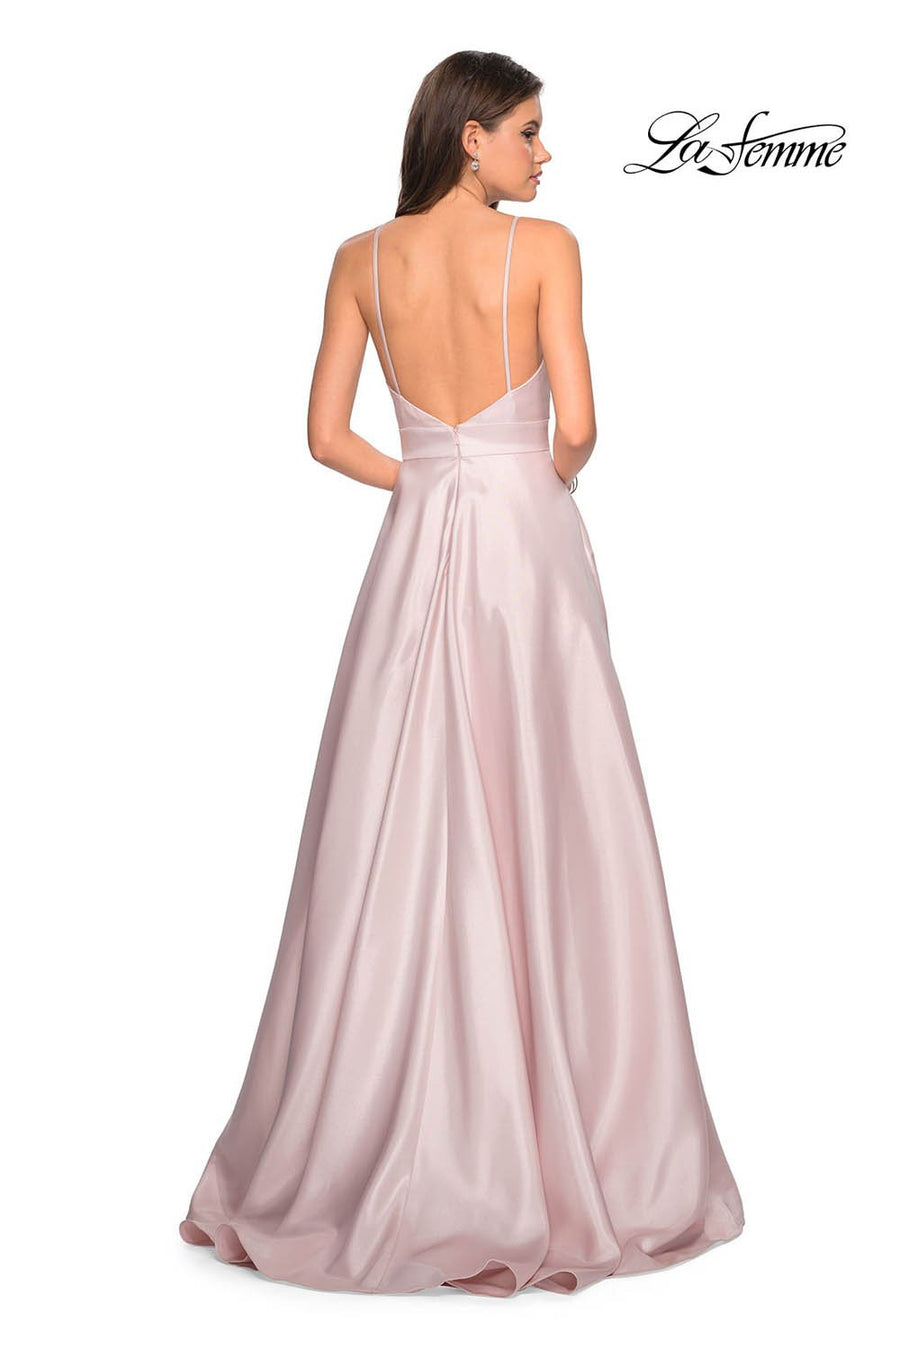 Gigi by La Femme 27823 prom dress images.  Gigi by La Femme 27823 is available in these colors: Aqua, Pale Pink.